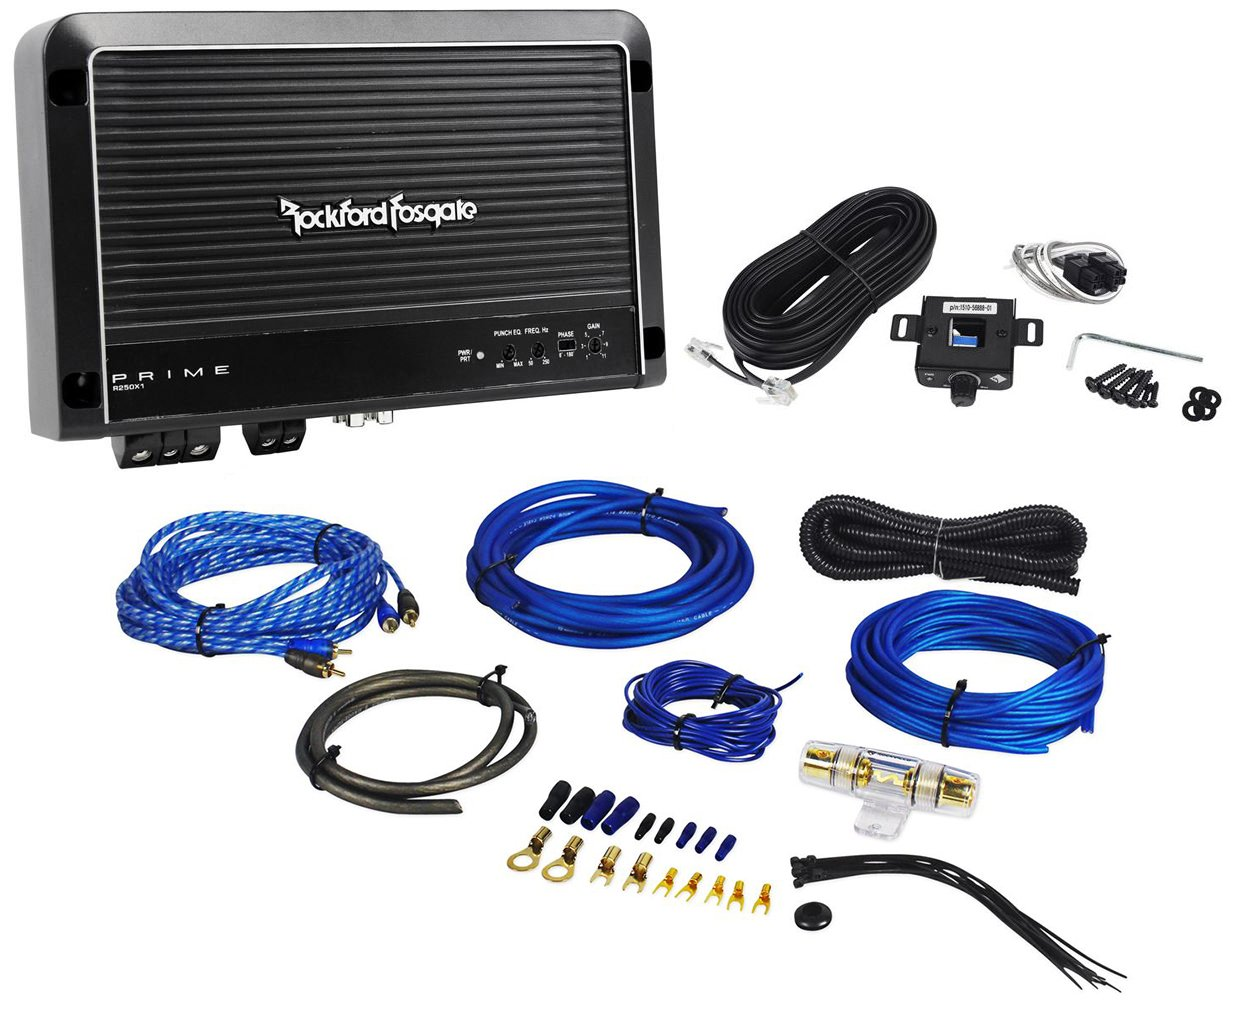 rockford wiring wizard with Cool S Le Rockford Fosgate Wiring Diagram on Rockford Fosgate Equalizer Wiring Diagram as well Gm Windshield Wiper Delay Wiring Diagram together with Rockford Fosgate Capacitor Wiring Diagram furthermore Electric Fence Wiring Diagram furthermore Subwoofer Box Wizard.